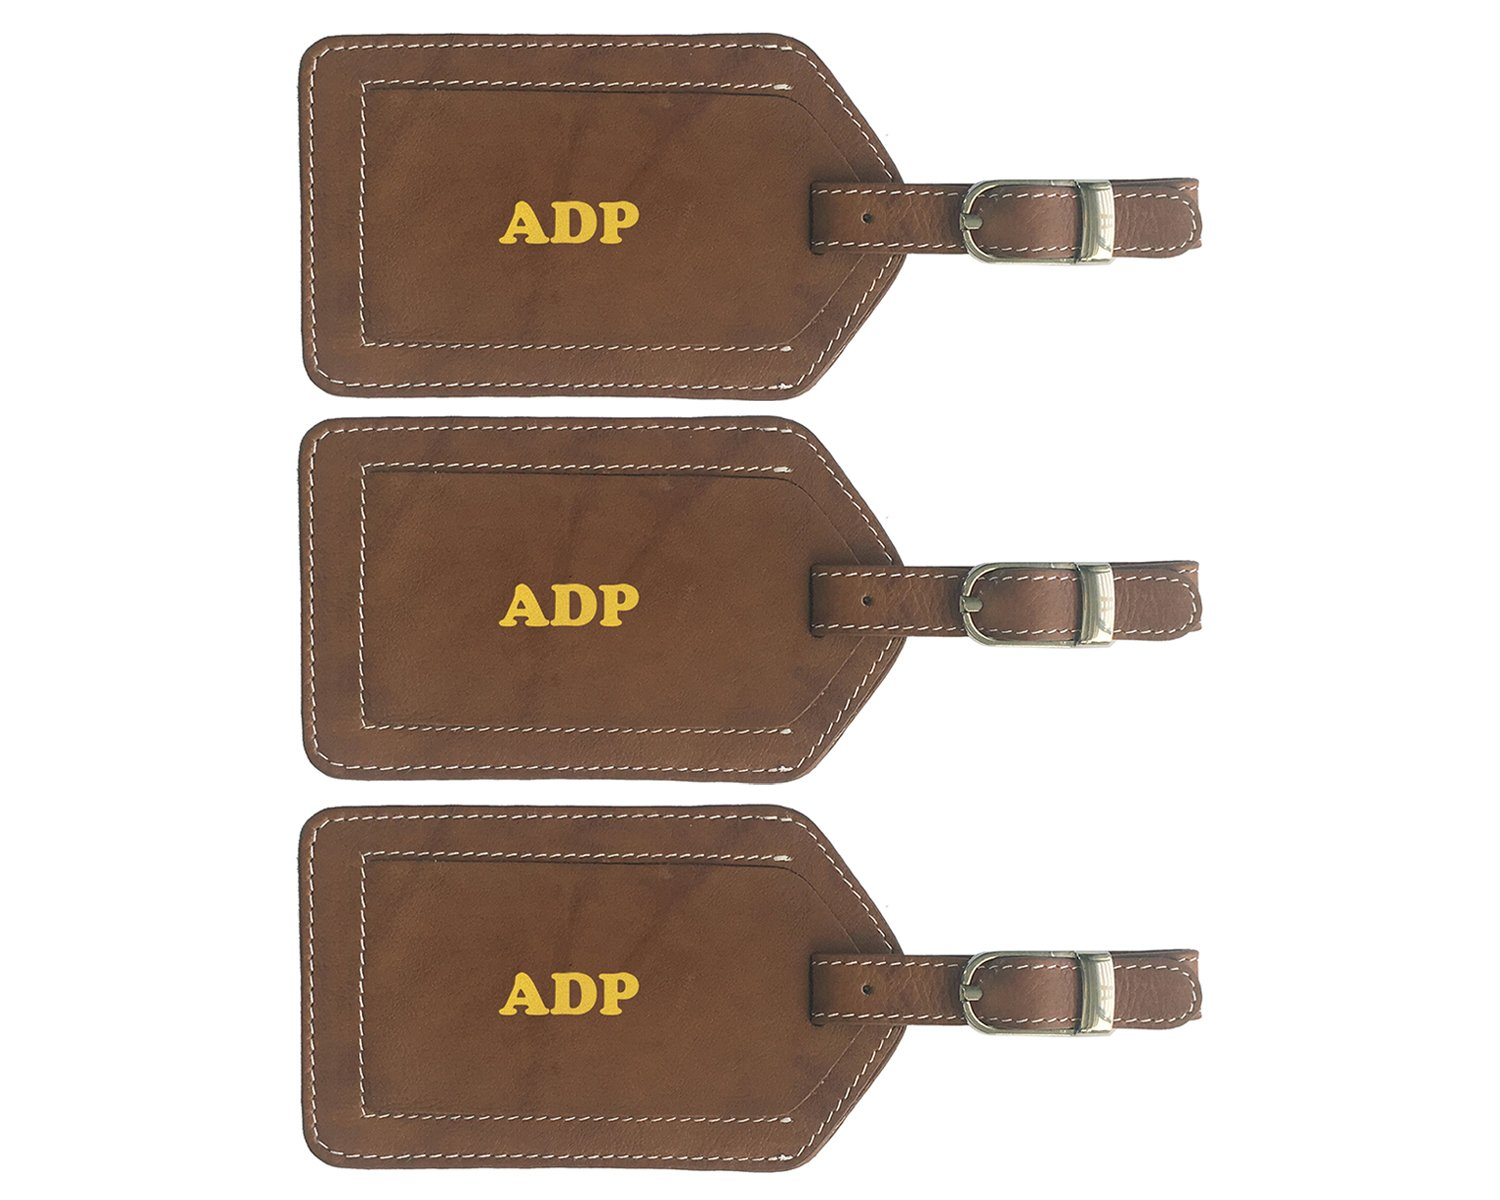 Personalized Monogrammed Antique Saddle Leather Luggage Tags - 3 Pack